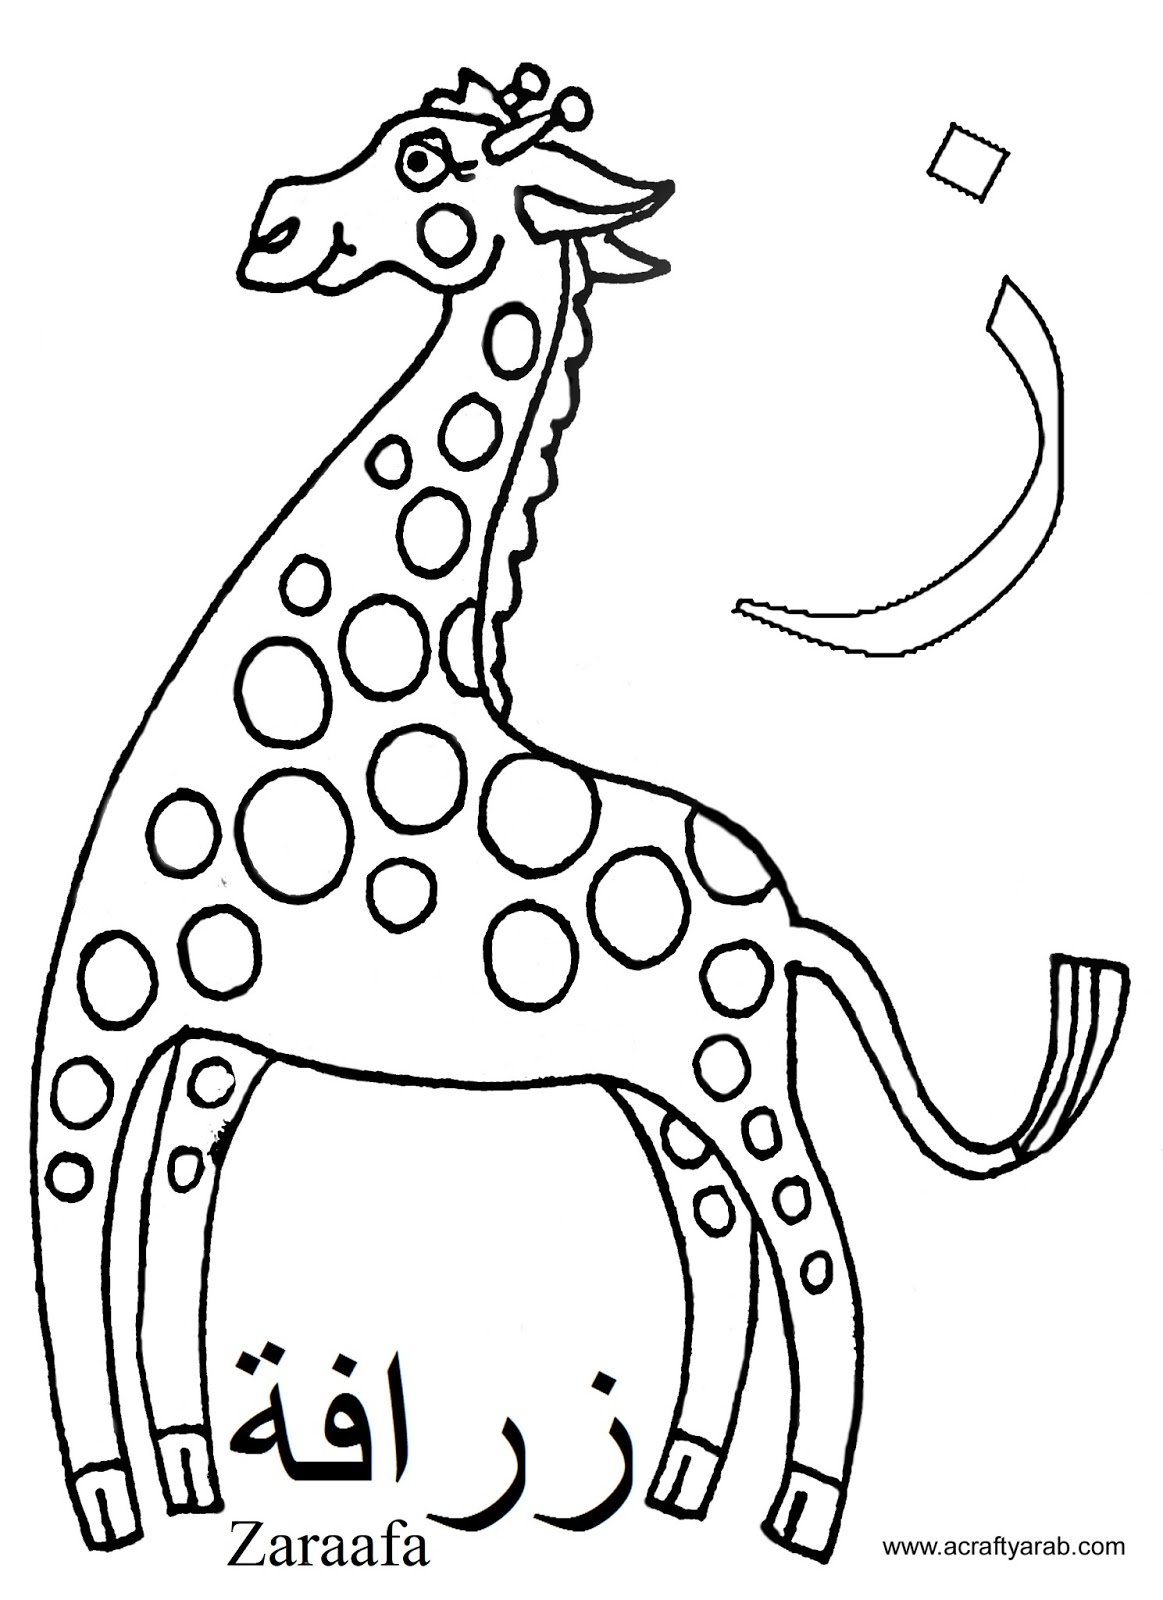 Arabic Alphabet Coloring Pages Yn Is For Zaraafa